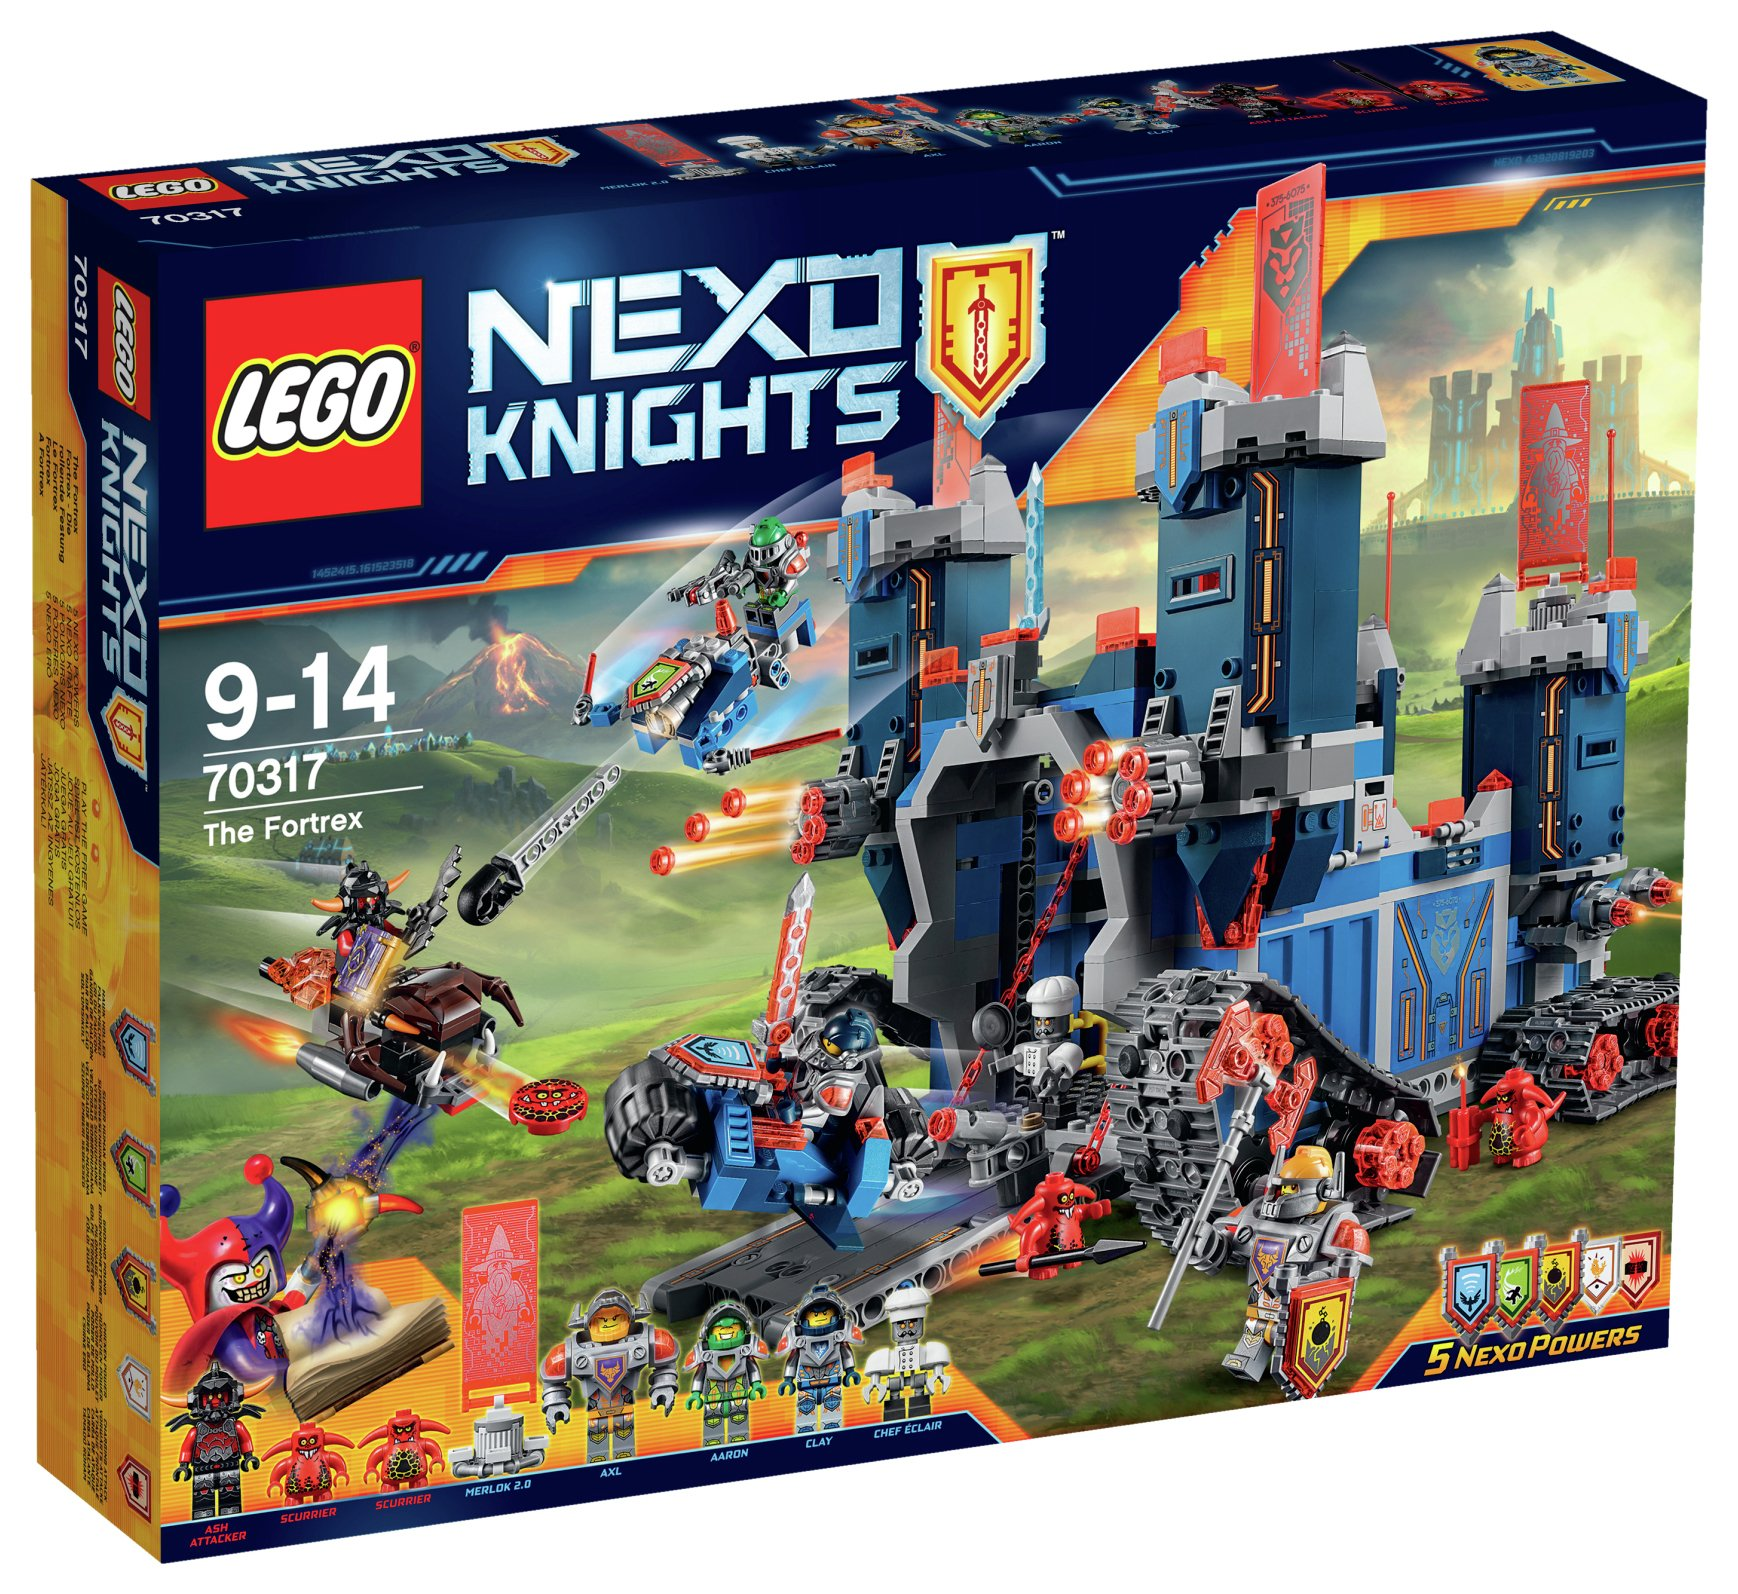 Image of LEGO Nexo Knights The Fortrex - 70317.